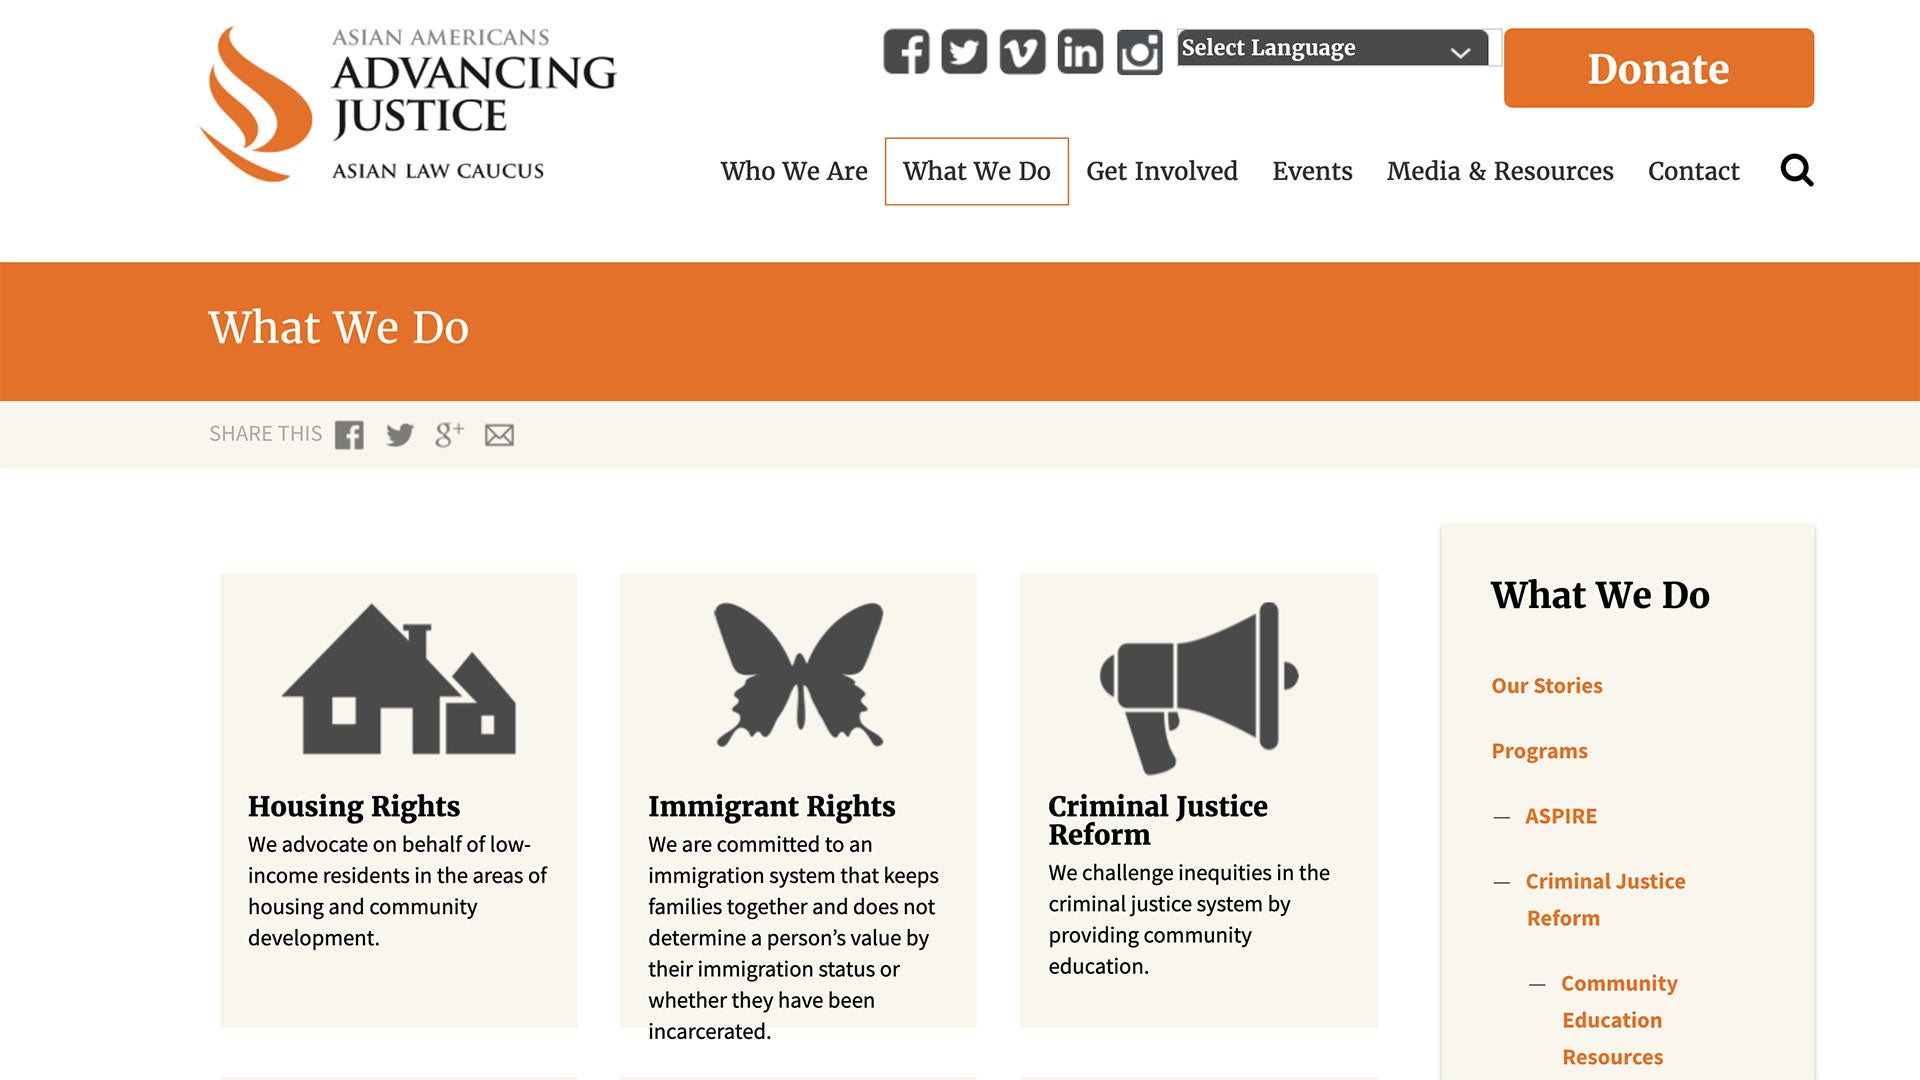 Asian Americans Advancing Justice Homepage